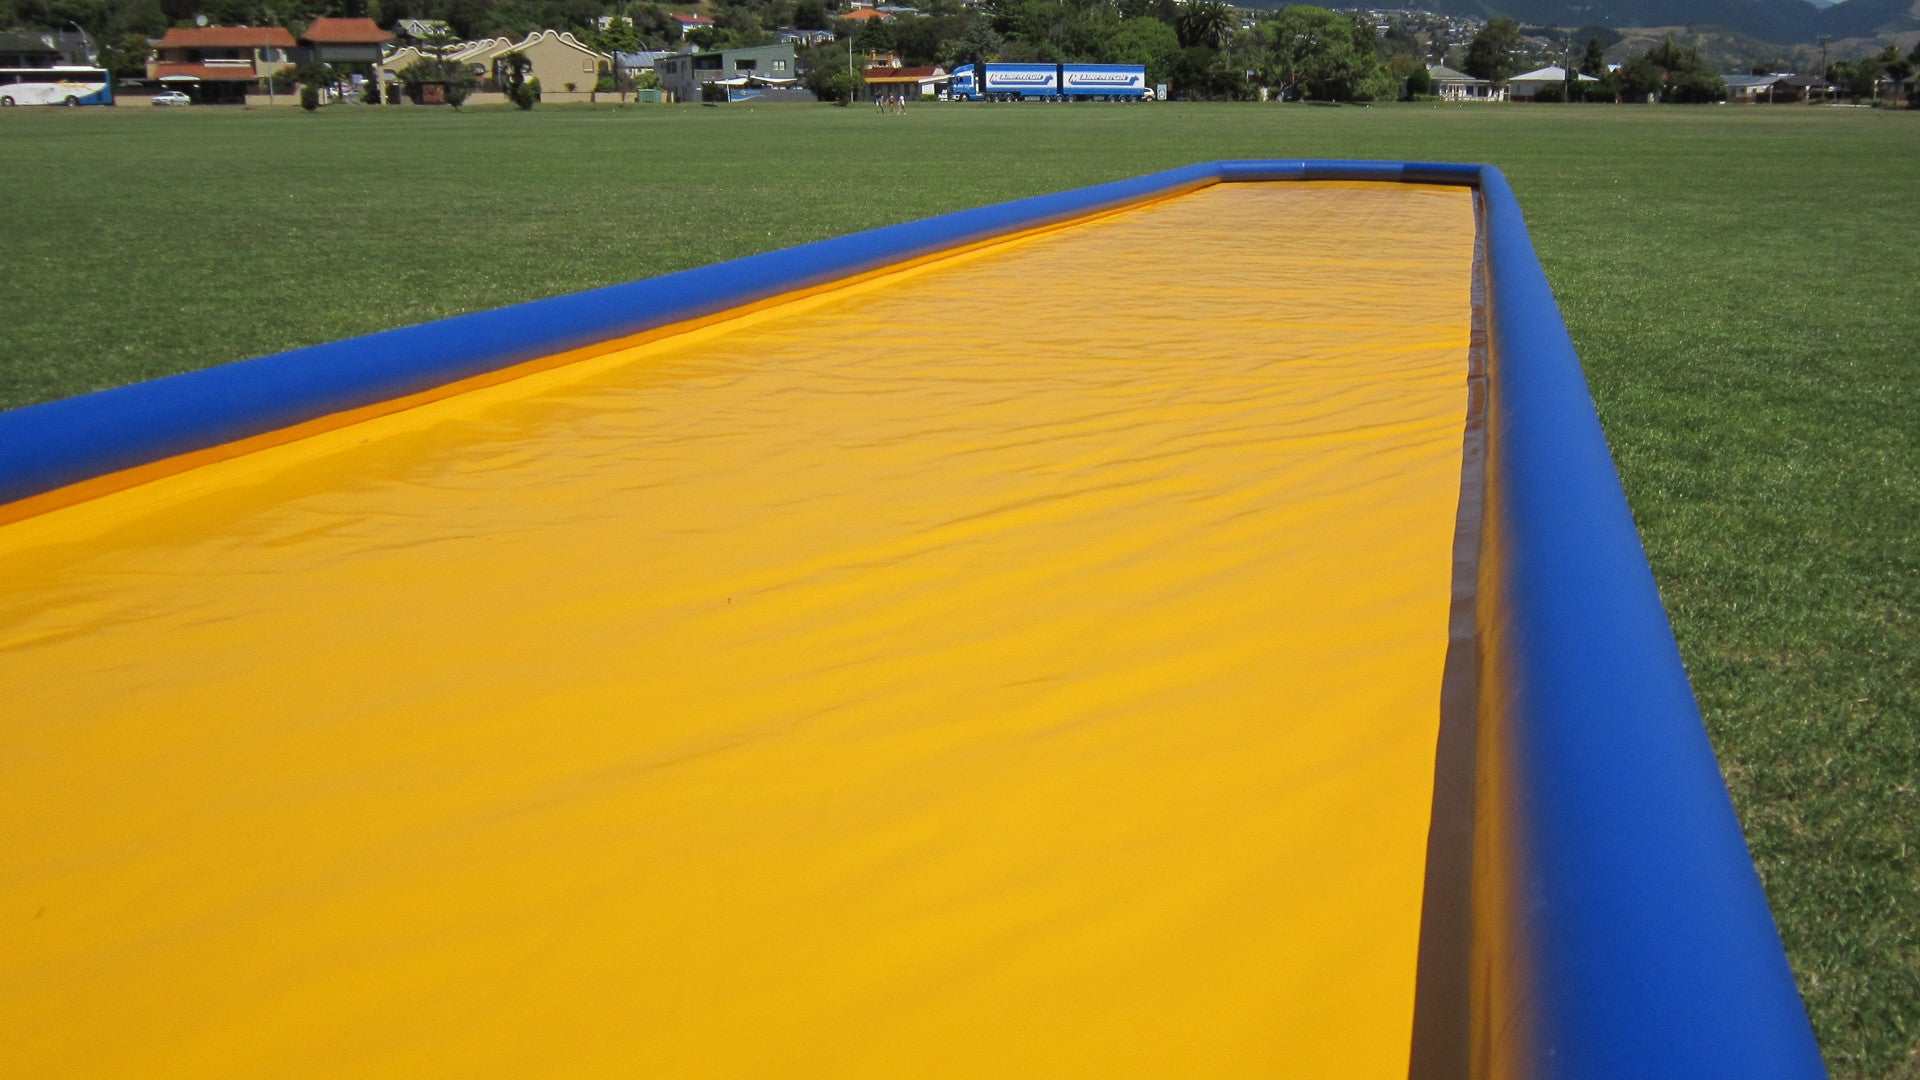 Slippery Slide 30 m (98 ft) - Waterslides - Aflex Technology